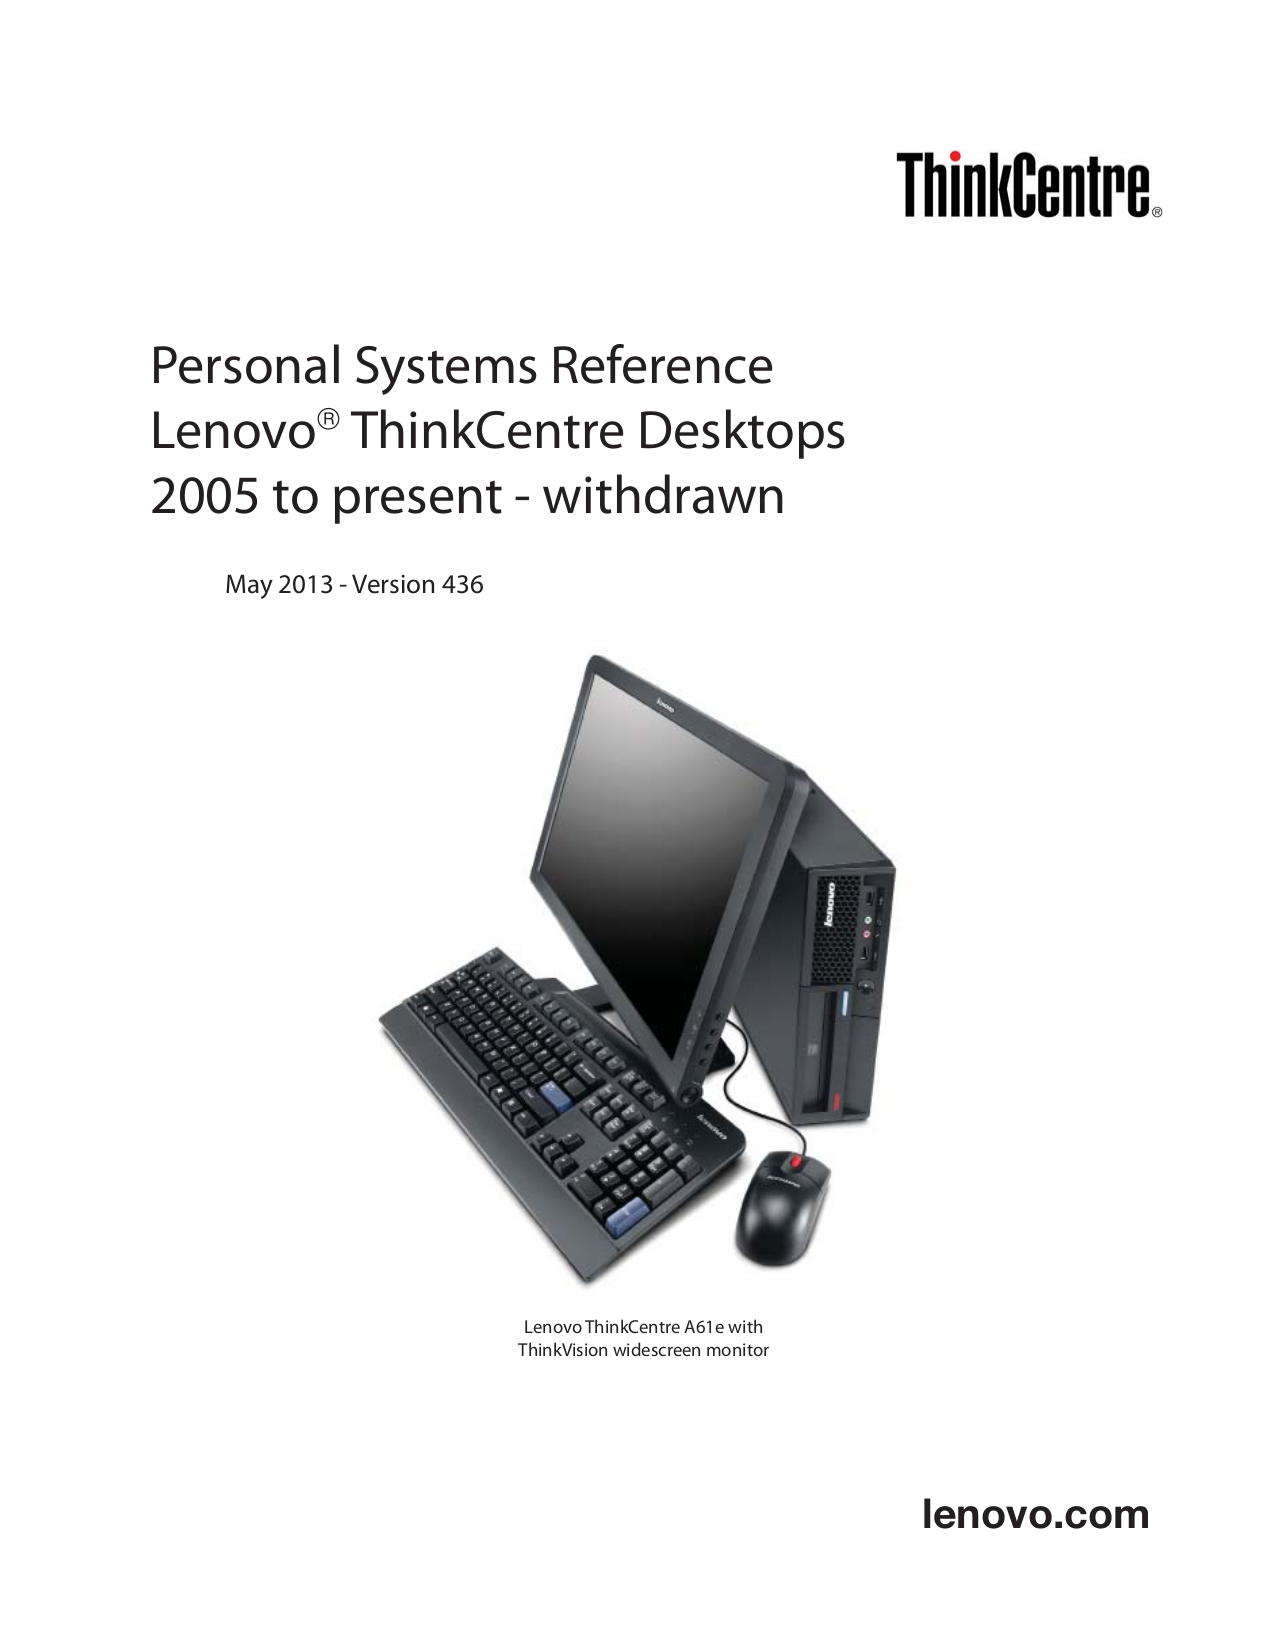 pdf for Lenovo Desktop ThinkCentre M51 8141 manual